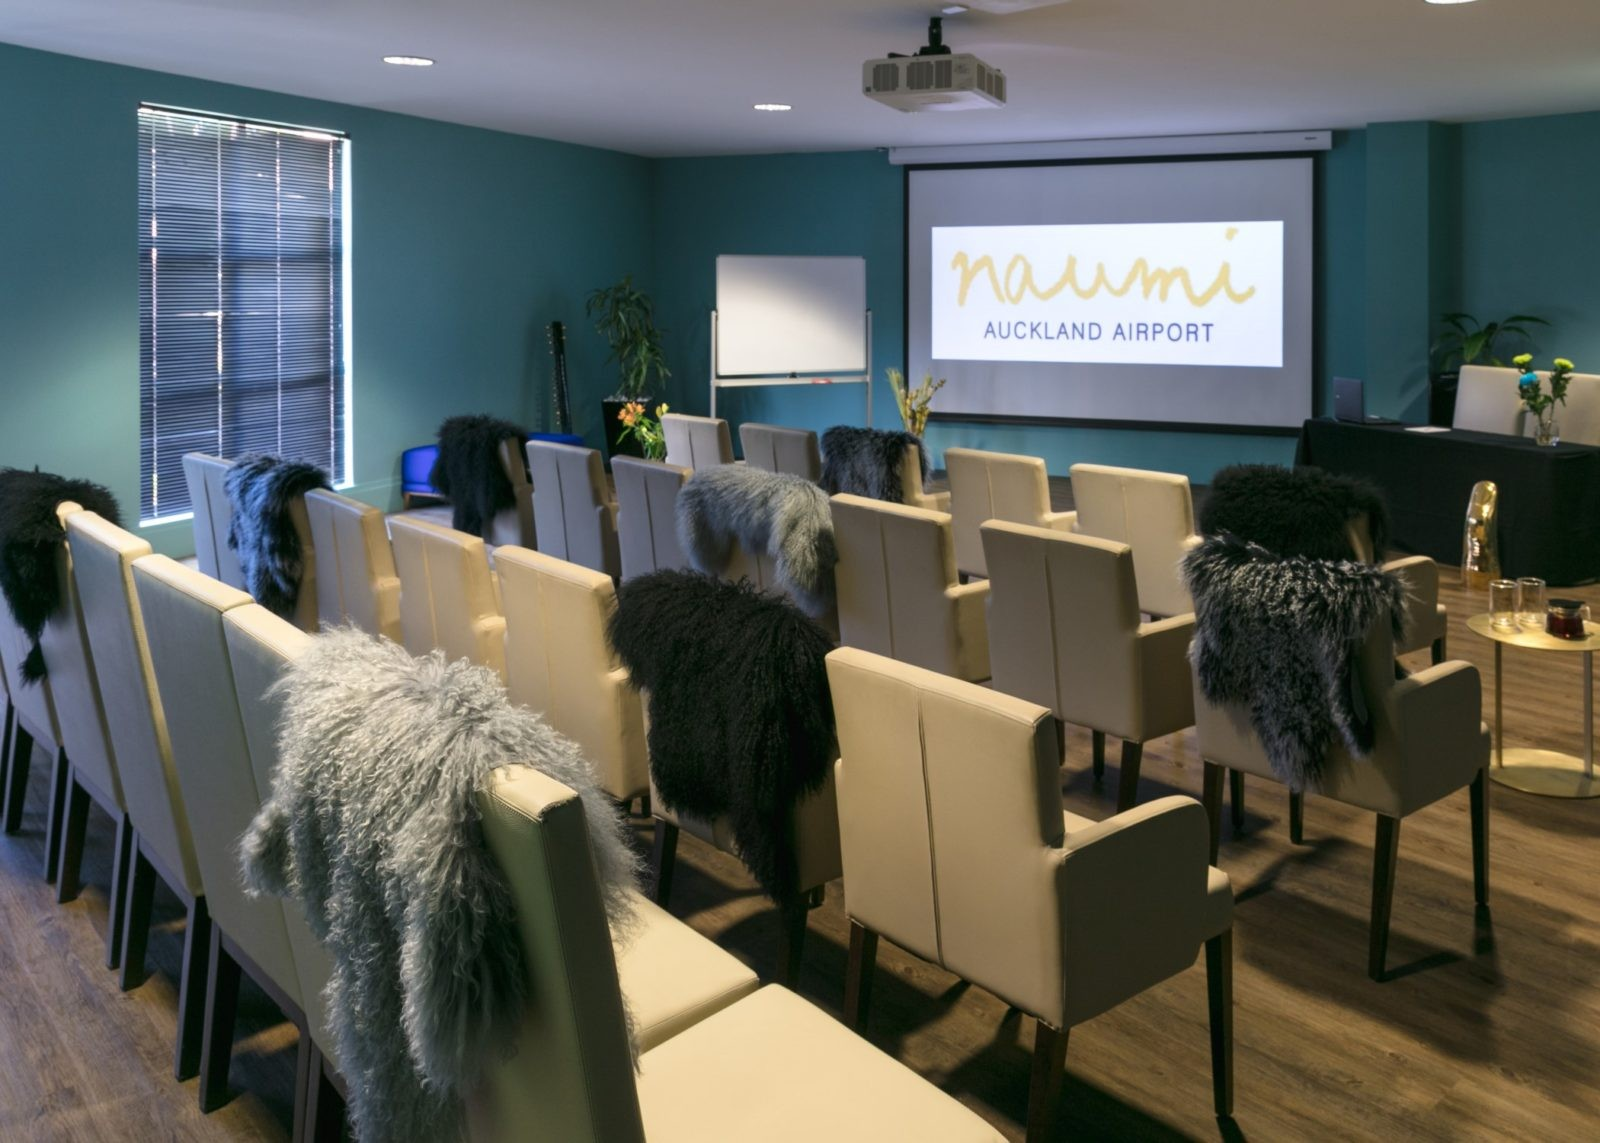 Naumi, hotel, airport, auckland, boardroom, conference, meeting, space, function, event, planning, corporate, rooms